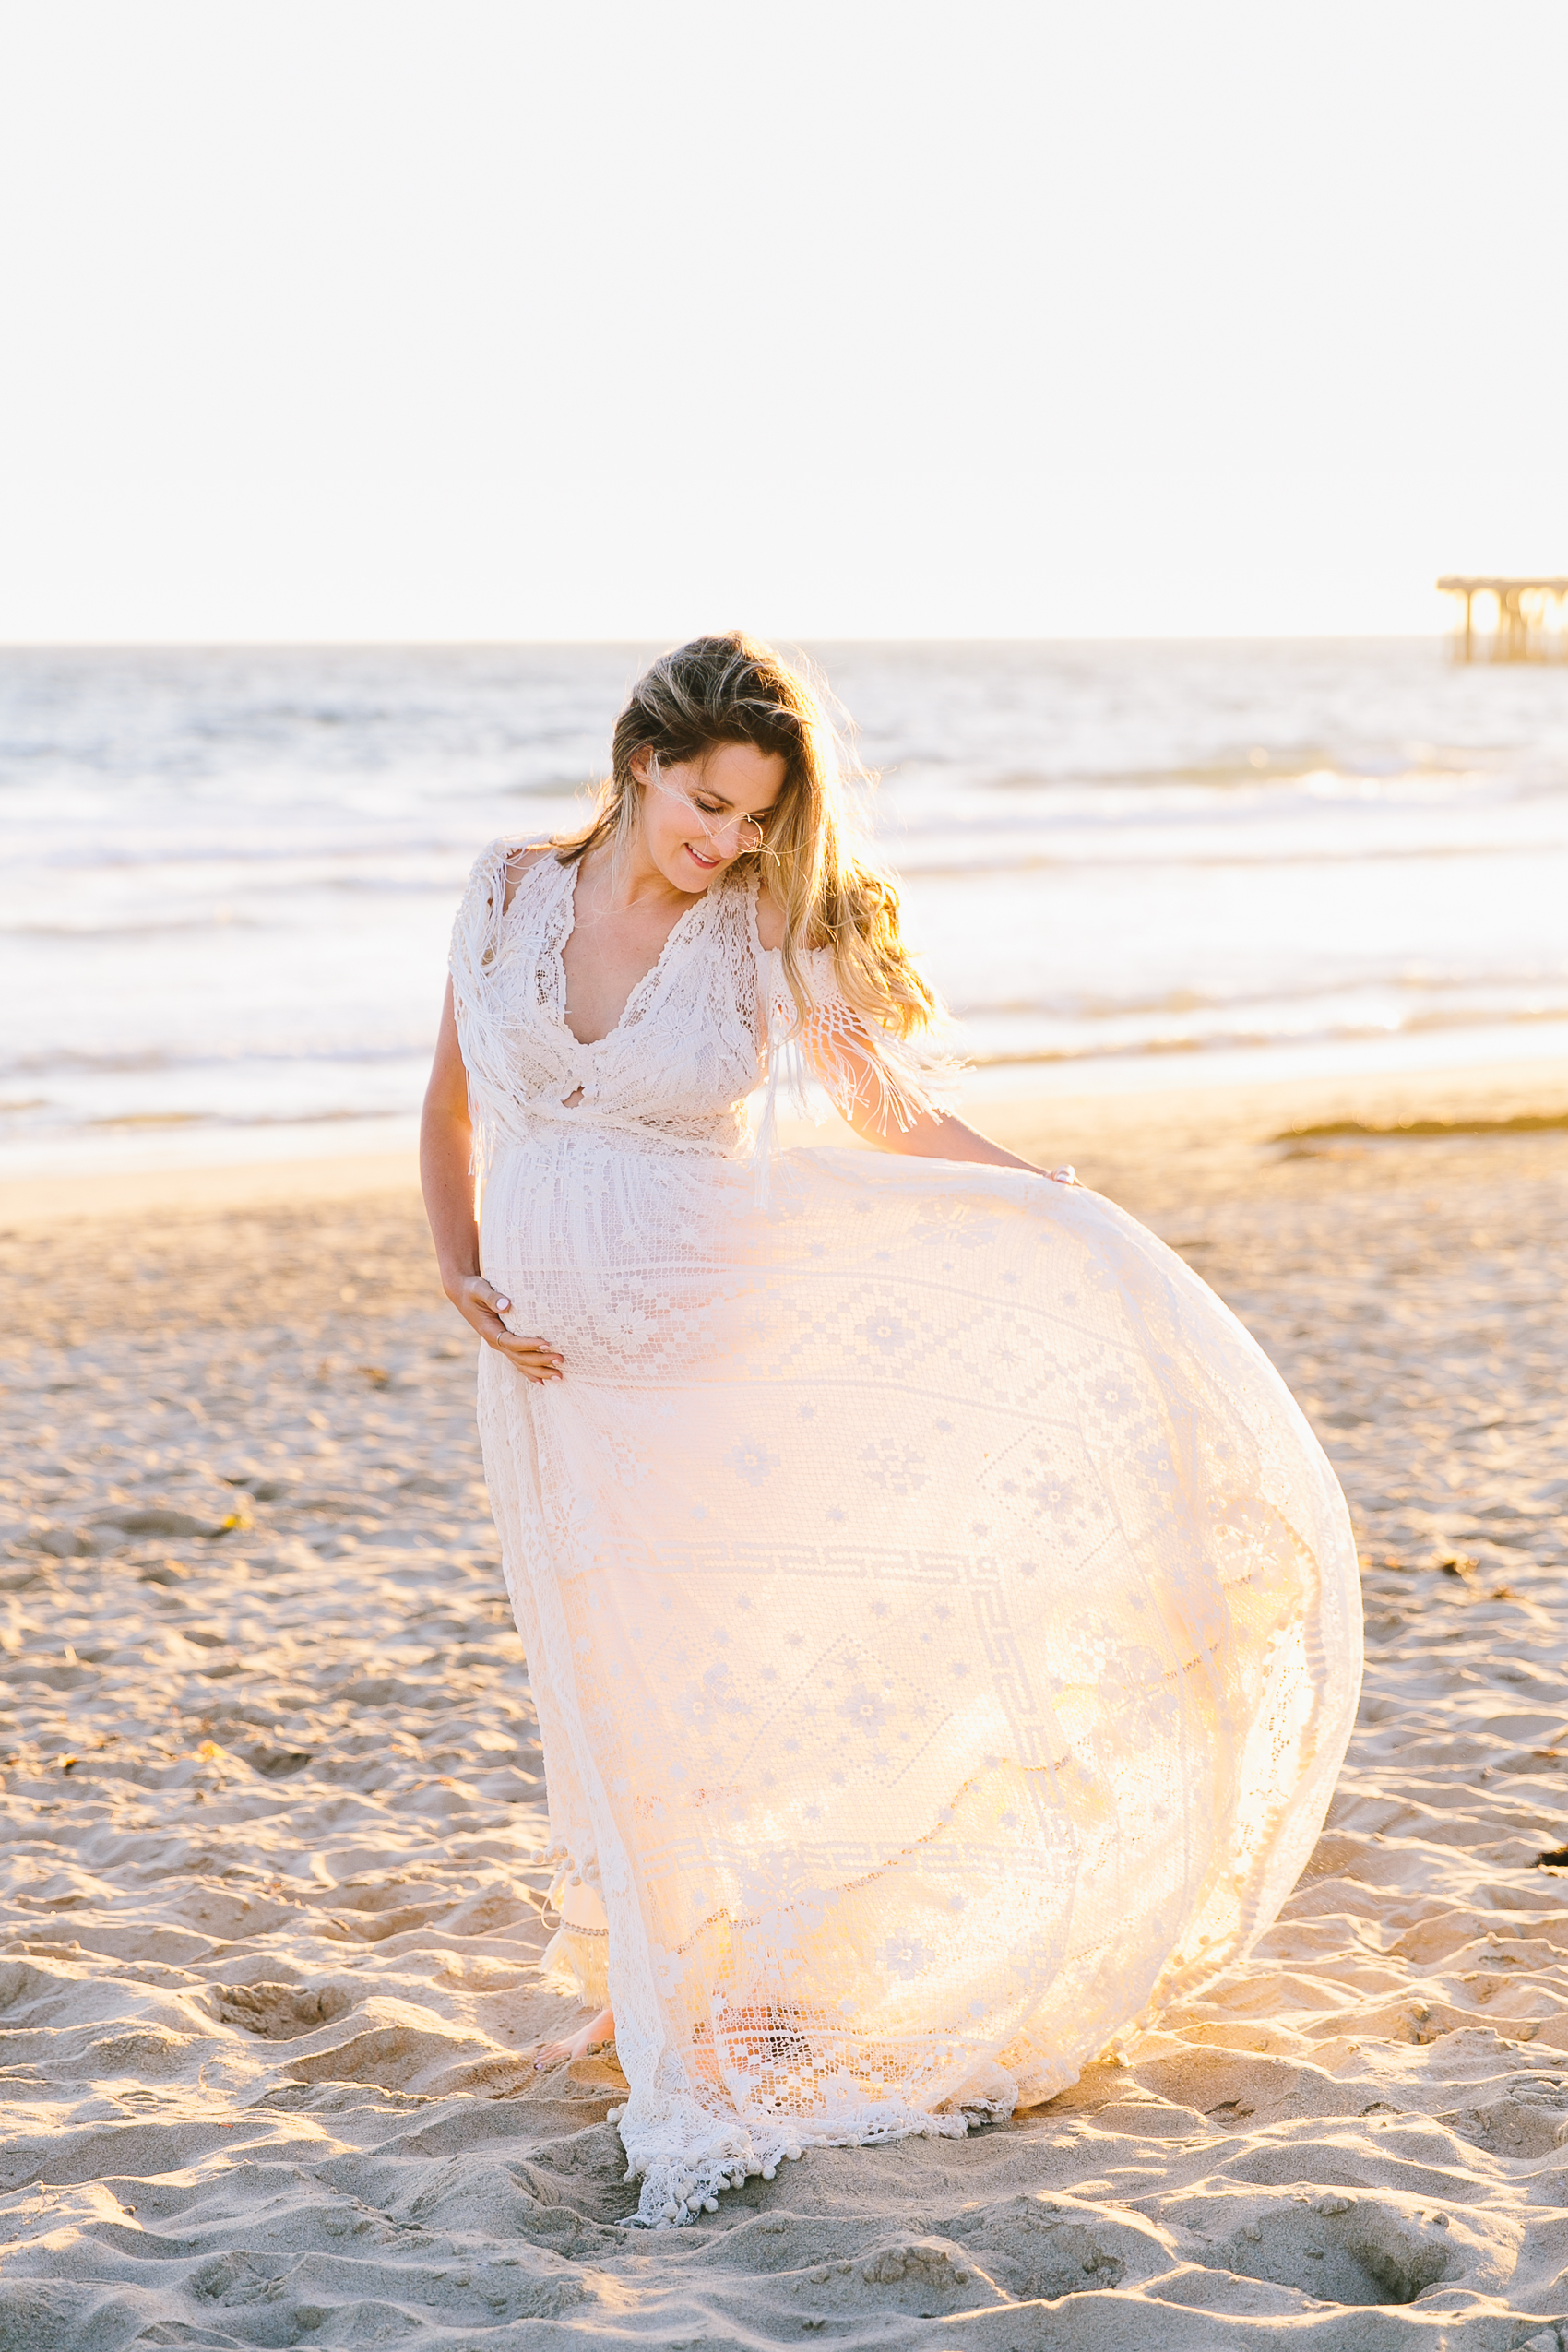 Los_Angeles_Family_Photographer_Maternity_Photos_Baby_Pregnancy_Venice_Beach_Golden_Hour-0866.jpg